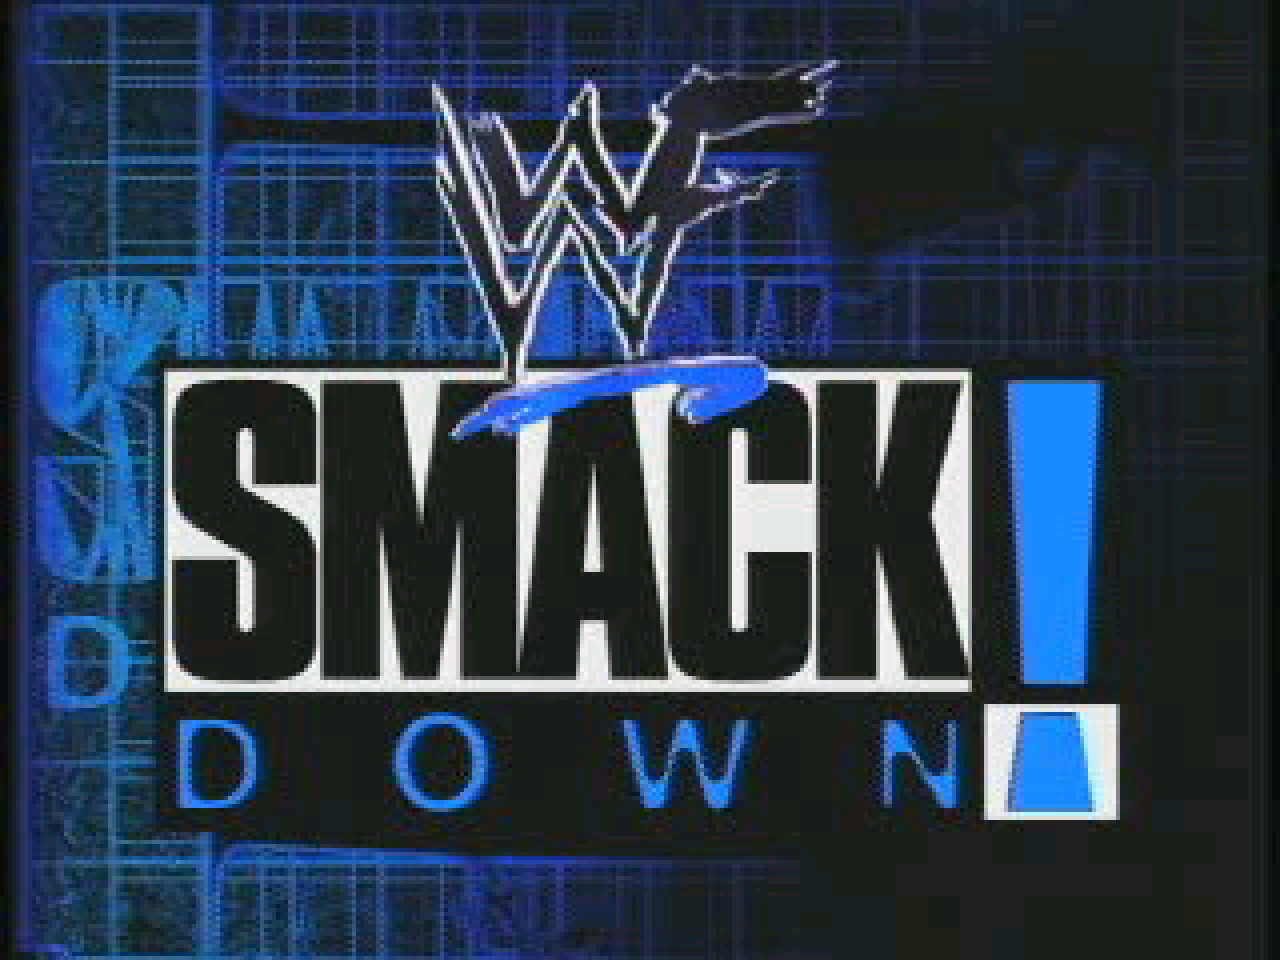 https://s3.eu-west-3.amazonaws.com/games.anthony-dessalles.com/WWF SmackDown 2 Know Your Role PS1 2020 - Screenshots/WWF SmackDown 2 Know Your Role-201127-183801.png